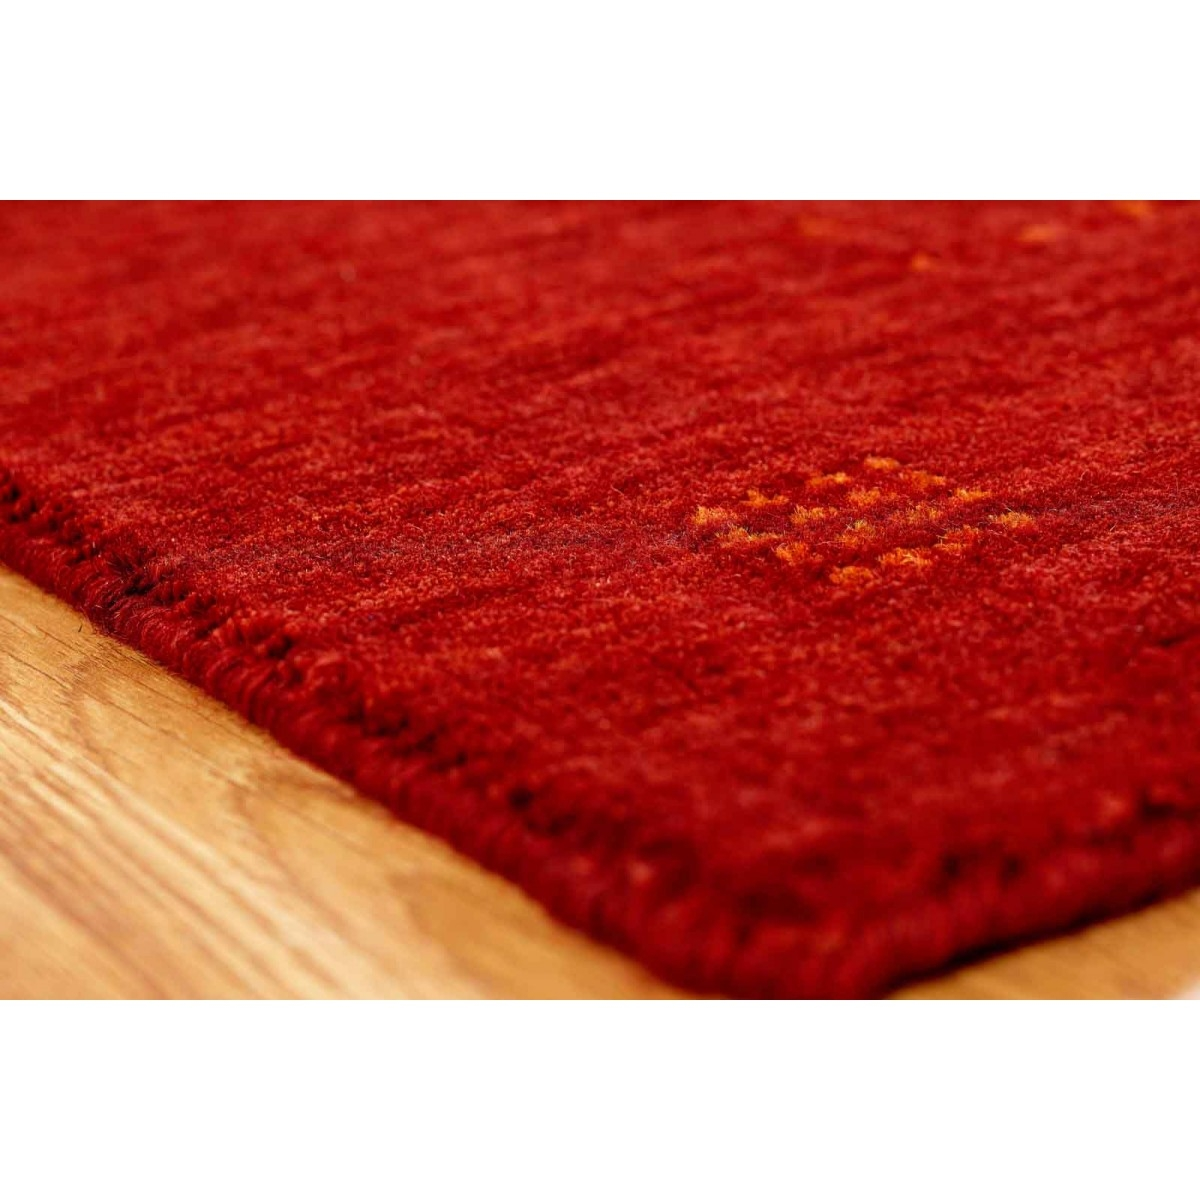 Red Wool Rugs Roselawnlutheran In Red Wool Rugs (View 8 of 15)